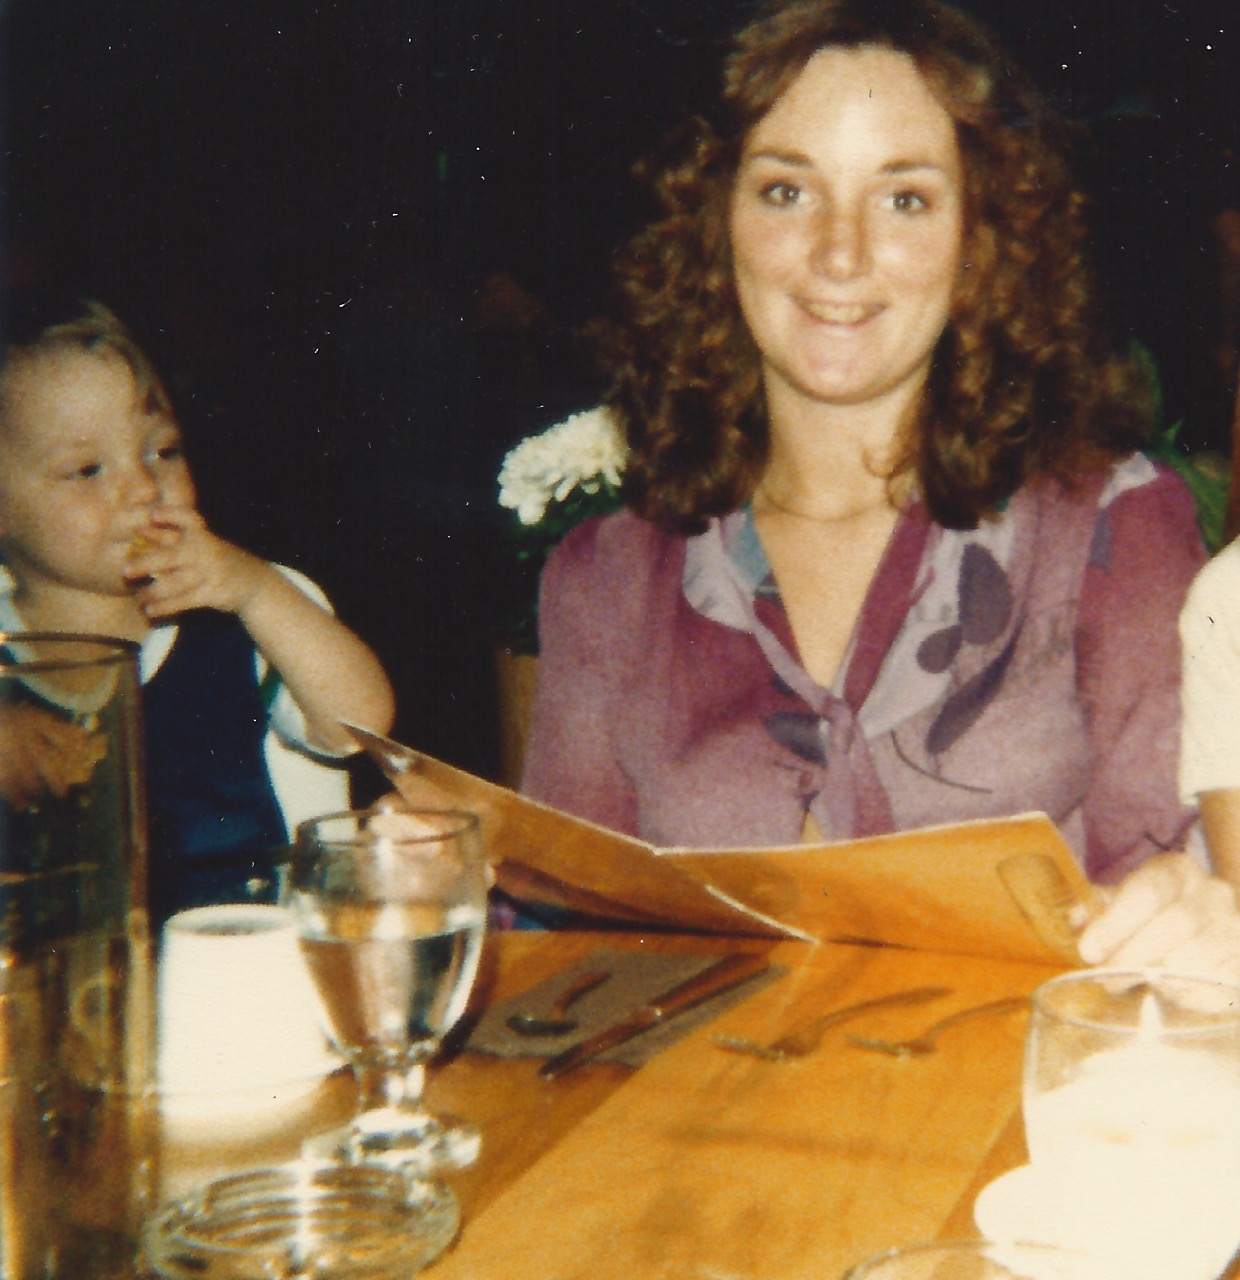 Barb with Josh abt 1982